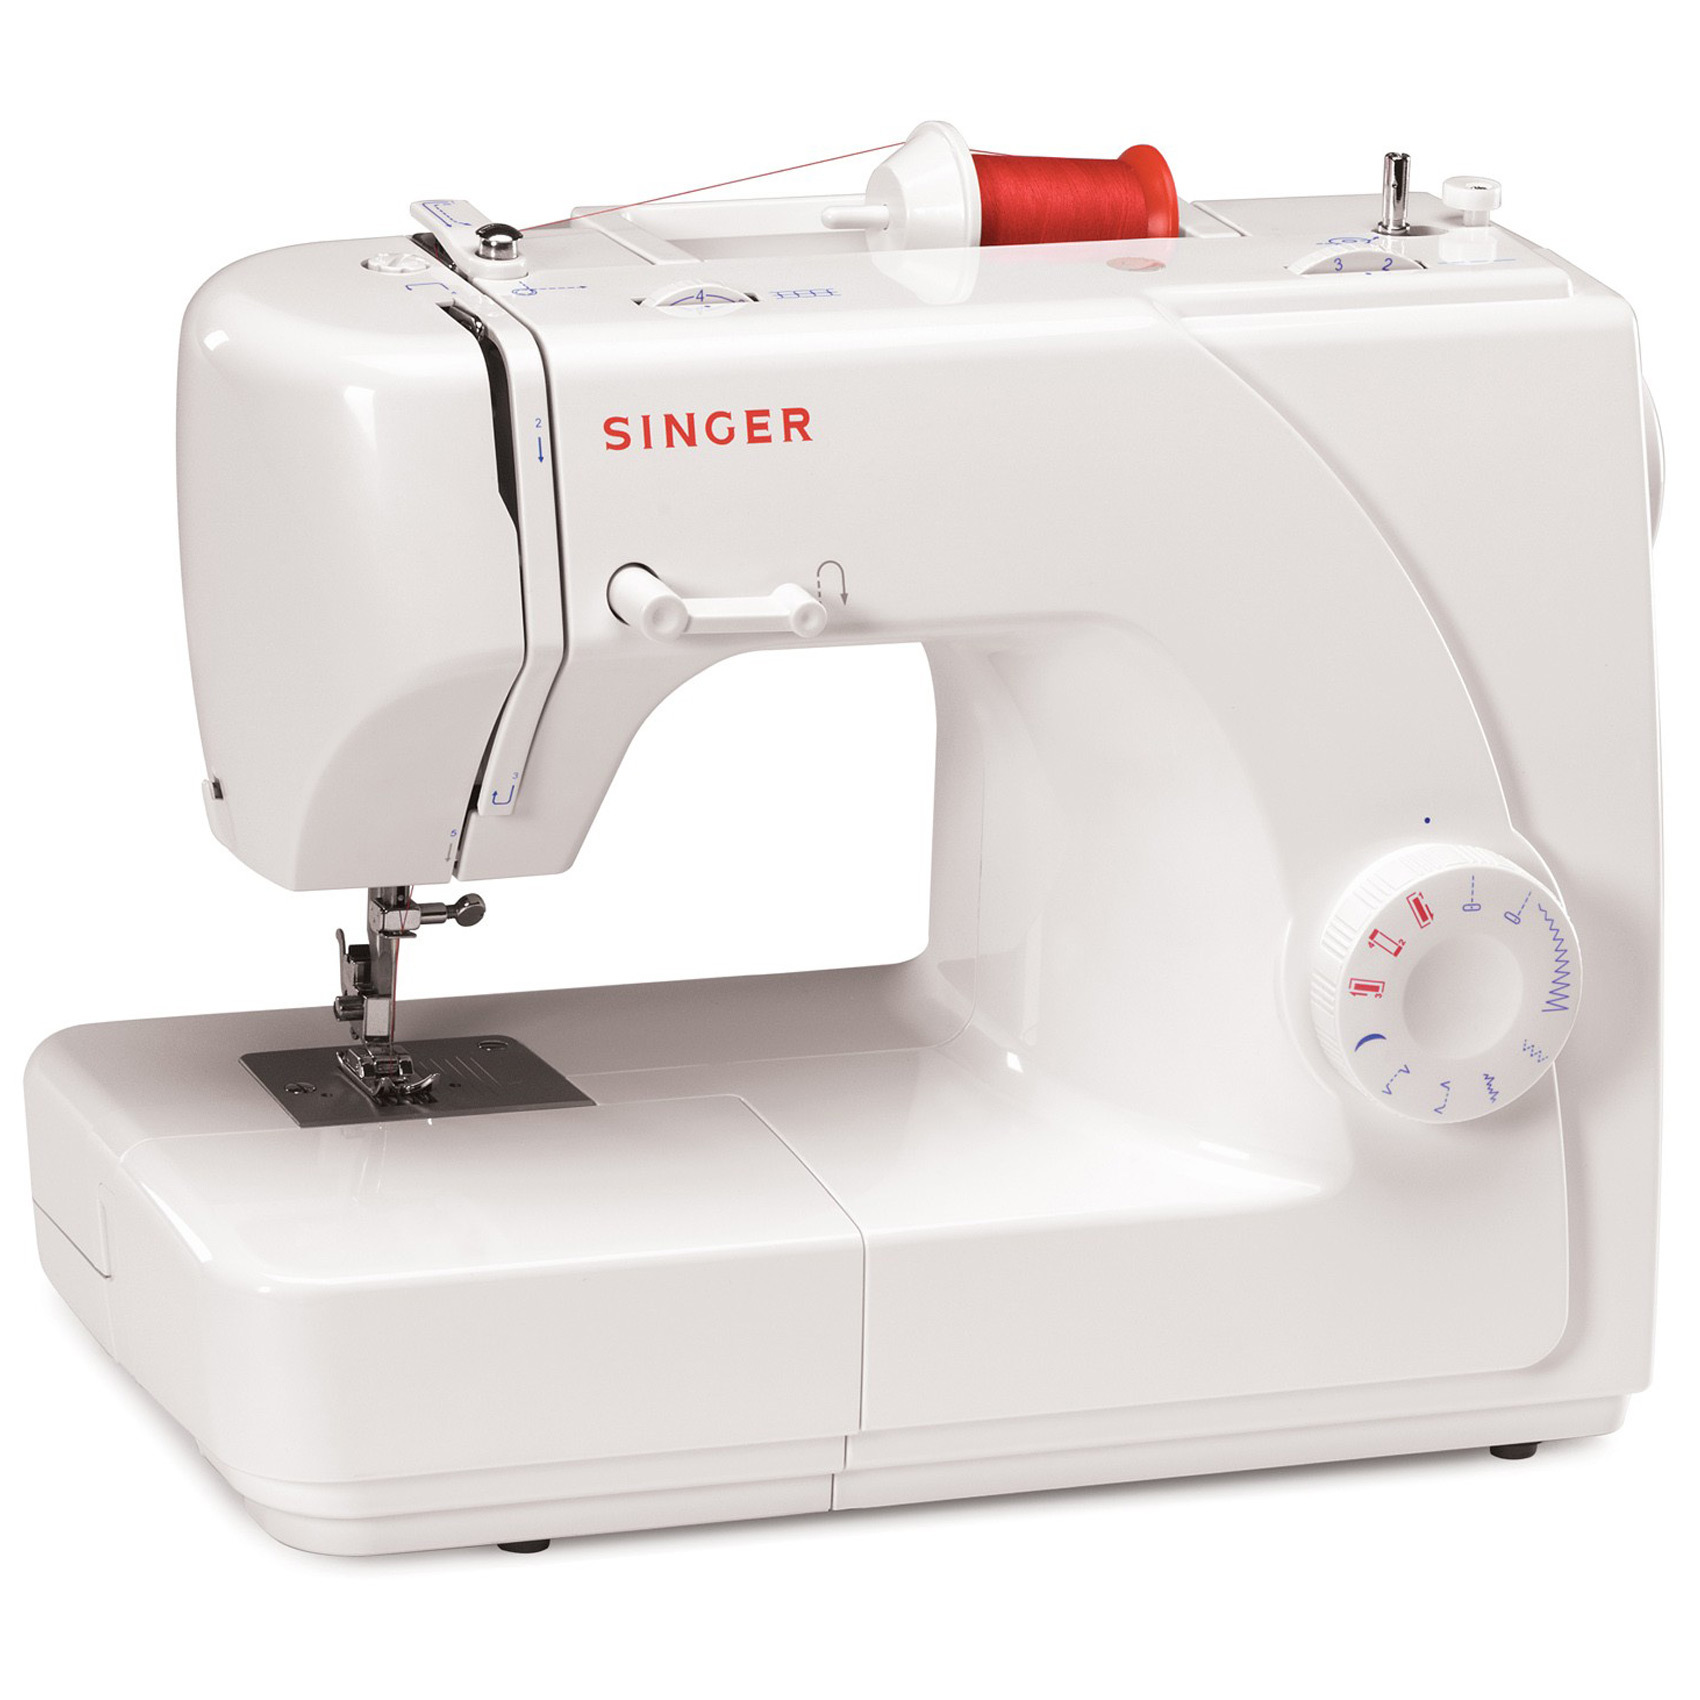 SINGER SEWING MACHINE 1507